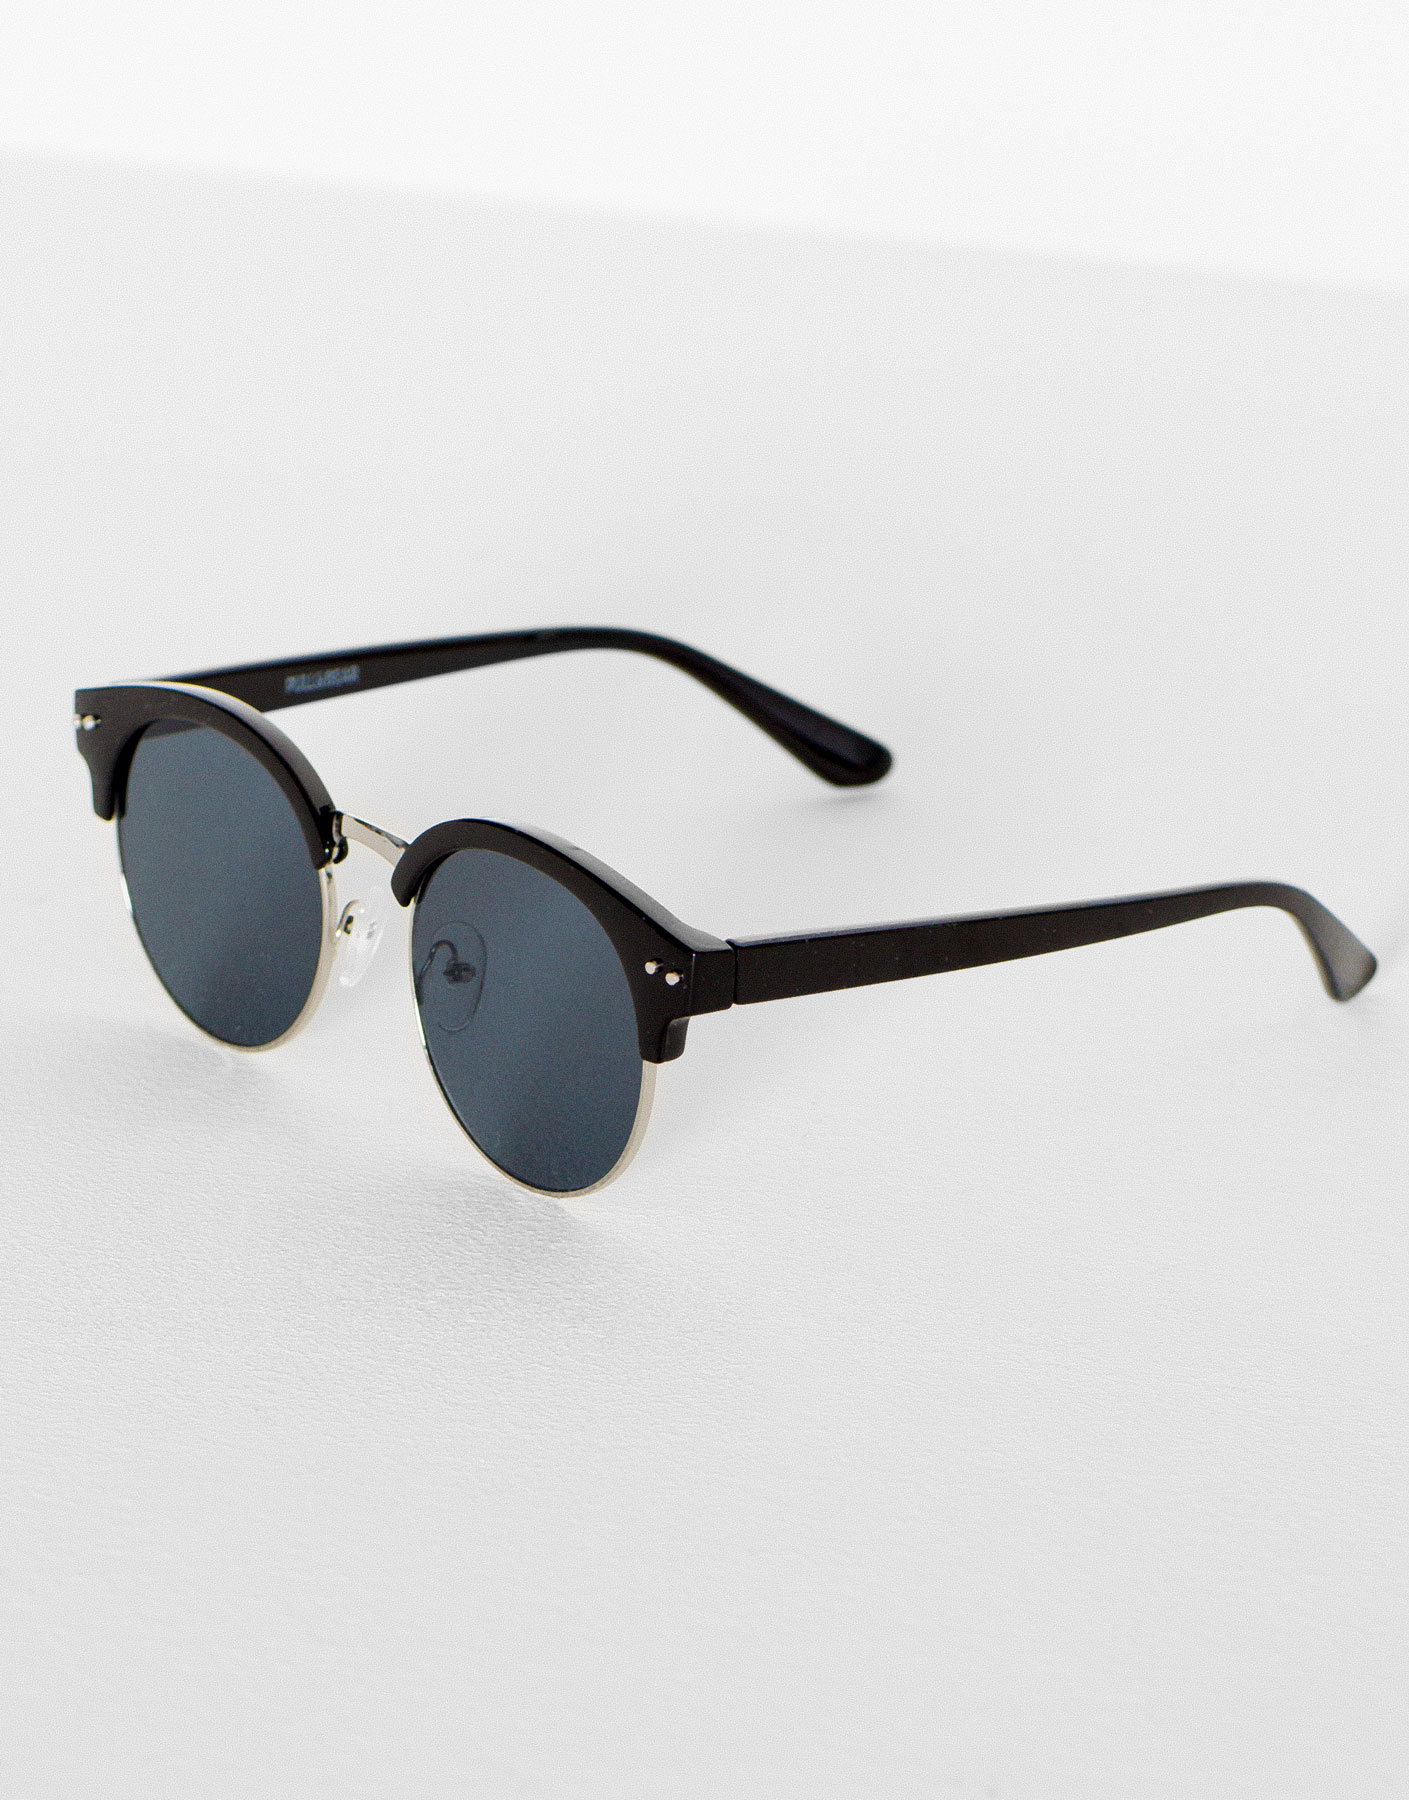 Round black framed sunglasses